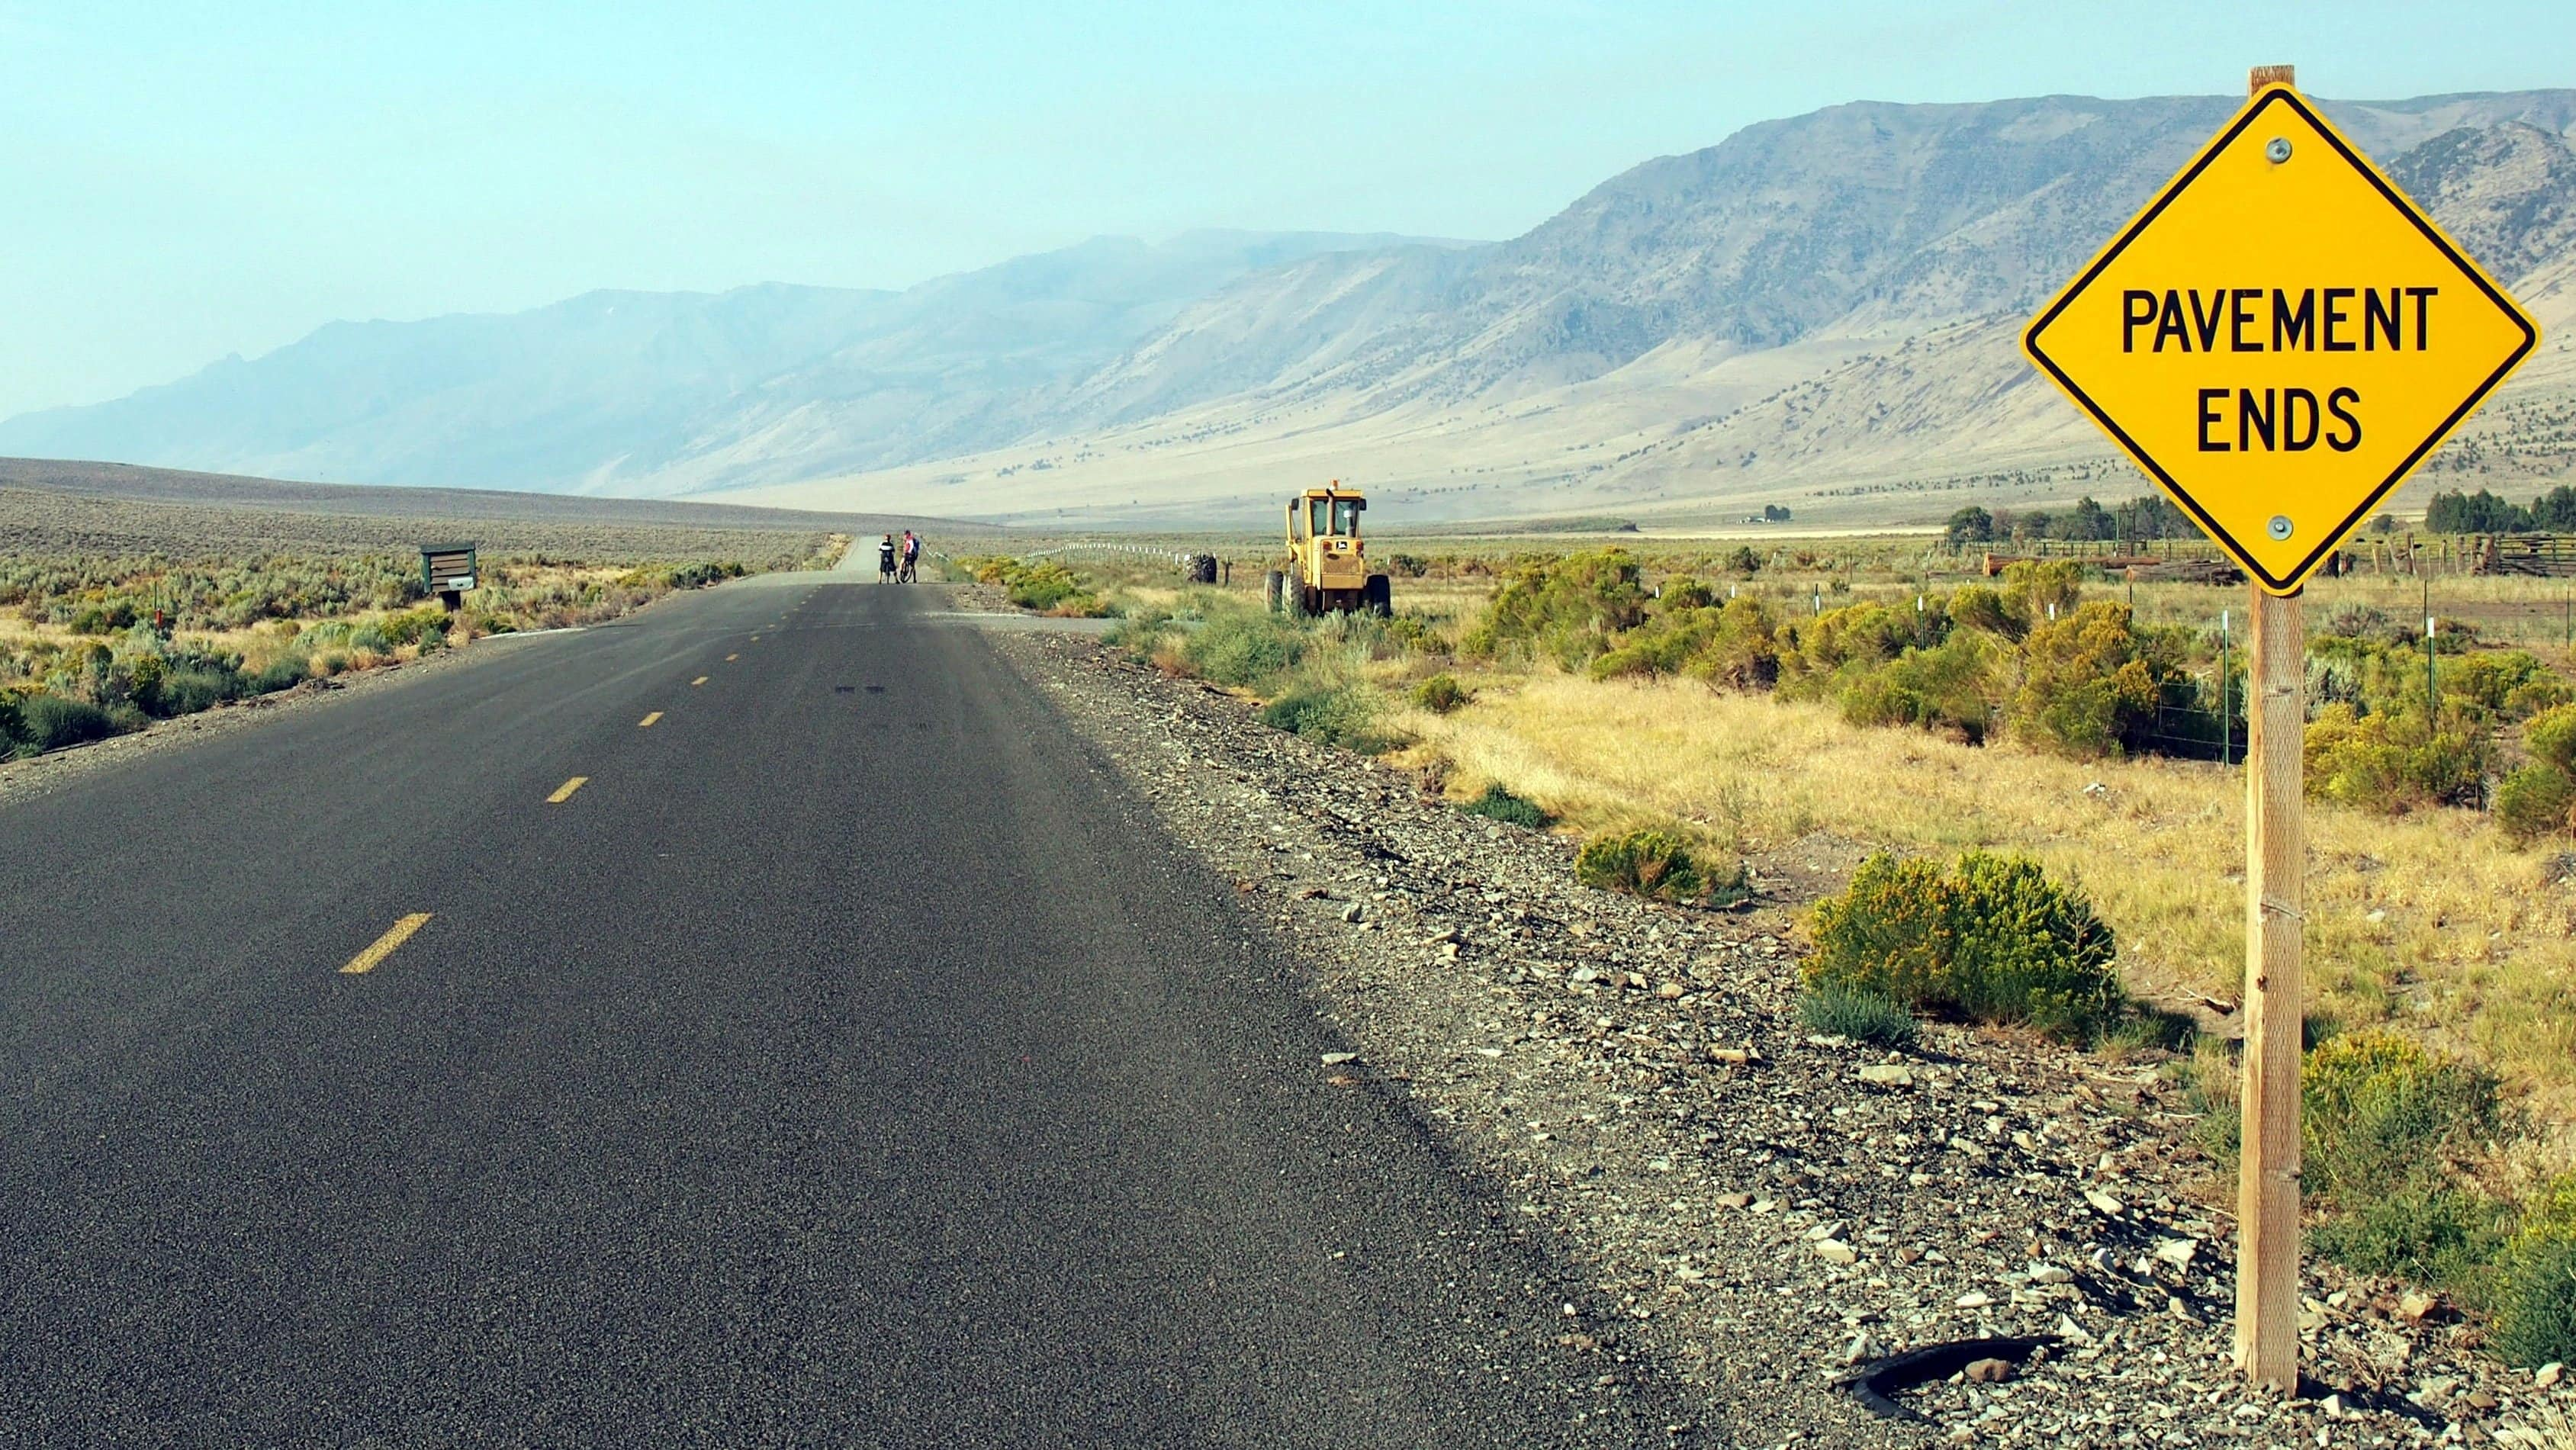 Fields Denio road, paved. Steens Mountain in background.